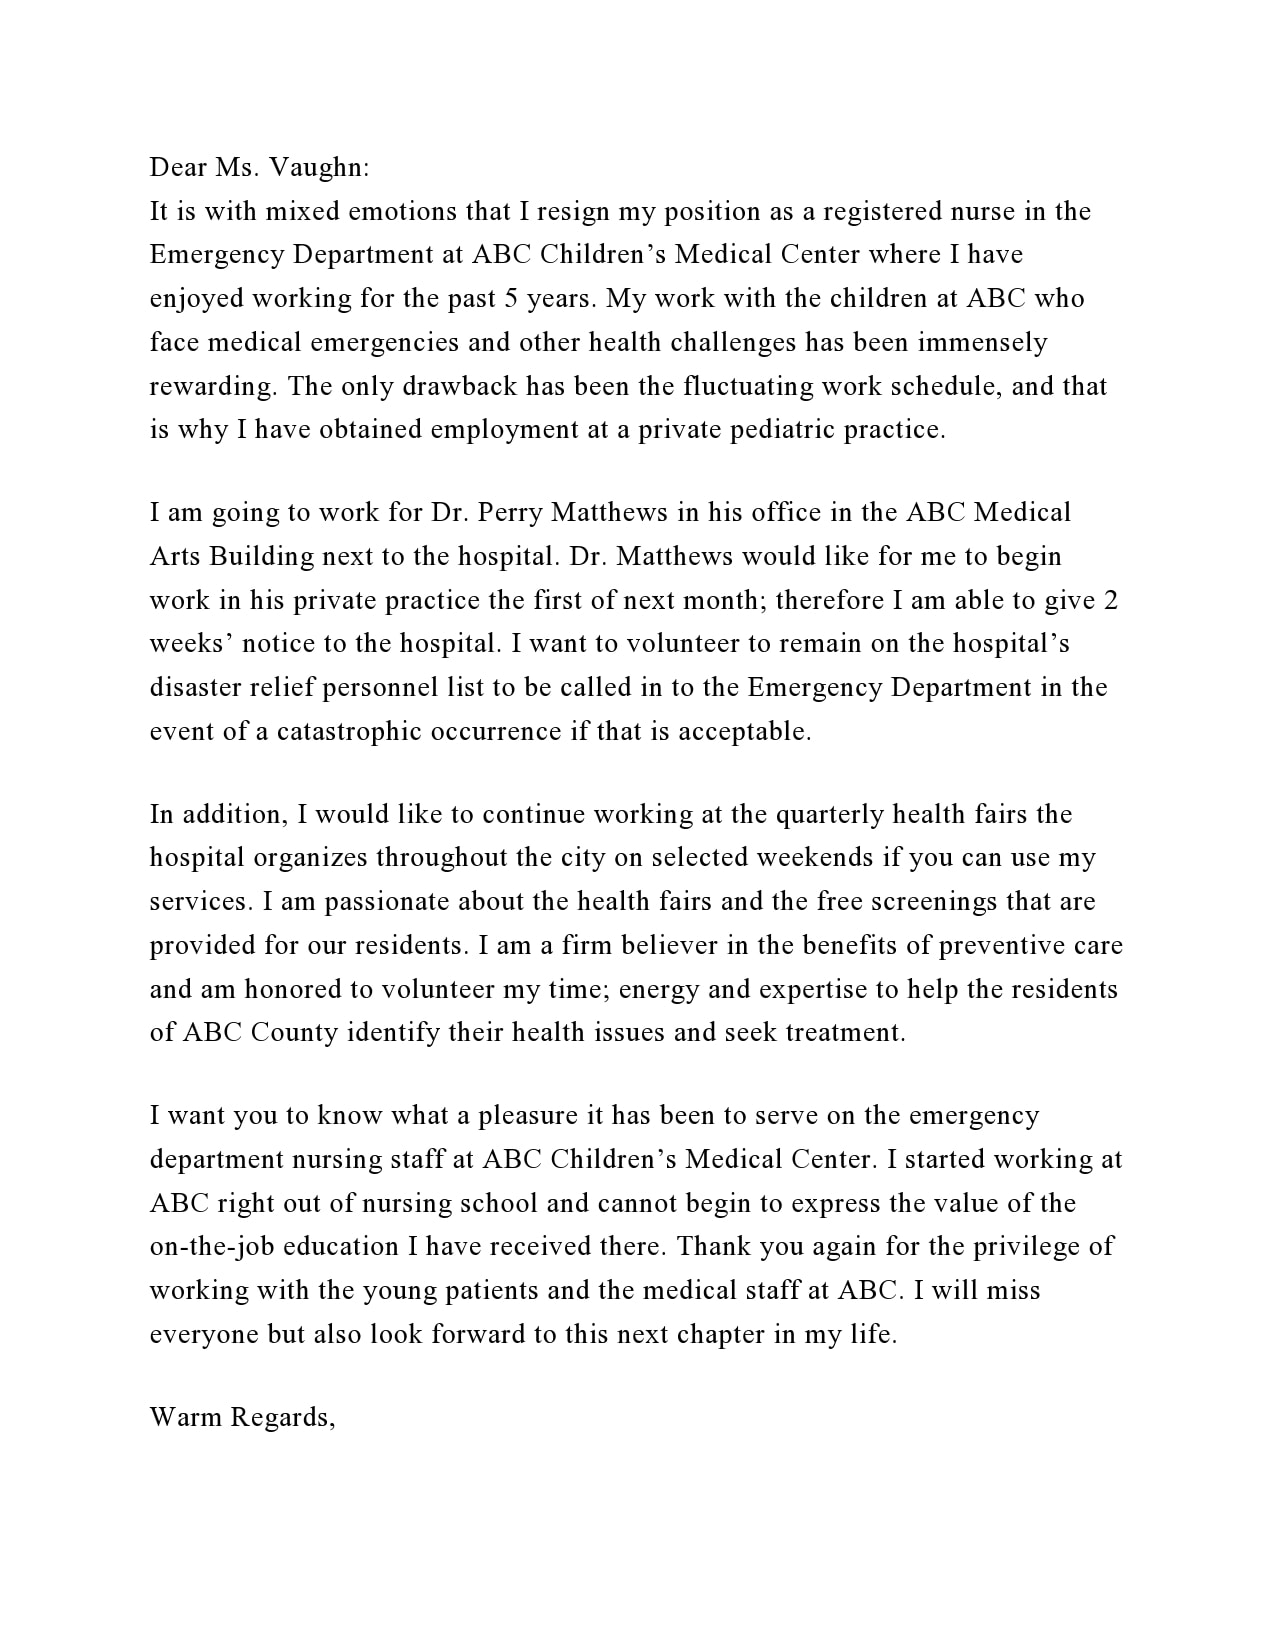 nursing resignation letter 09